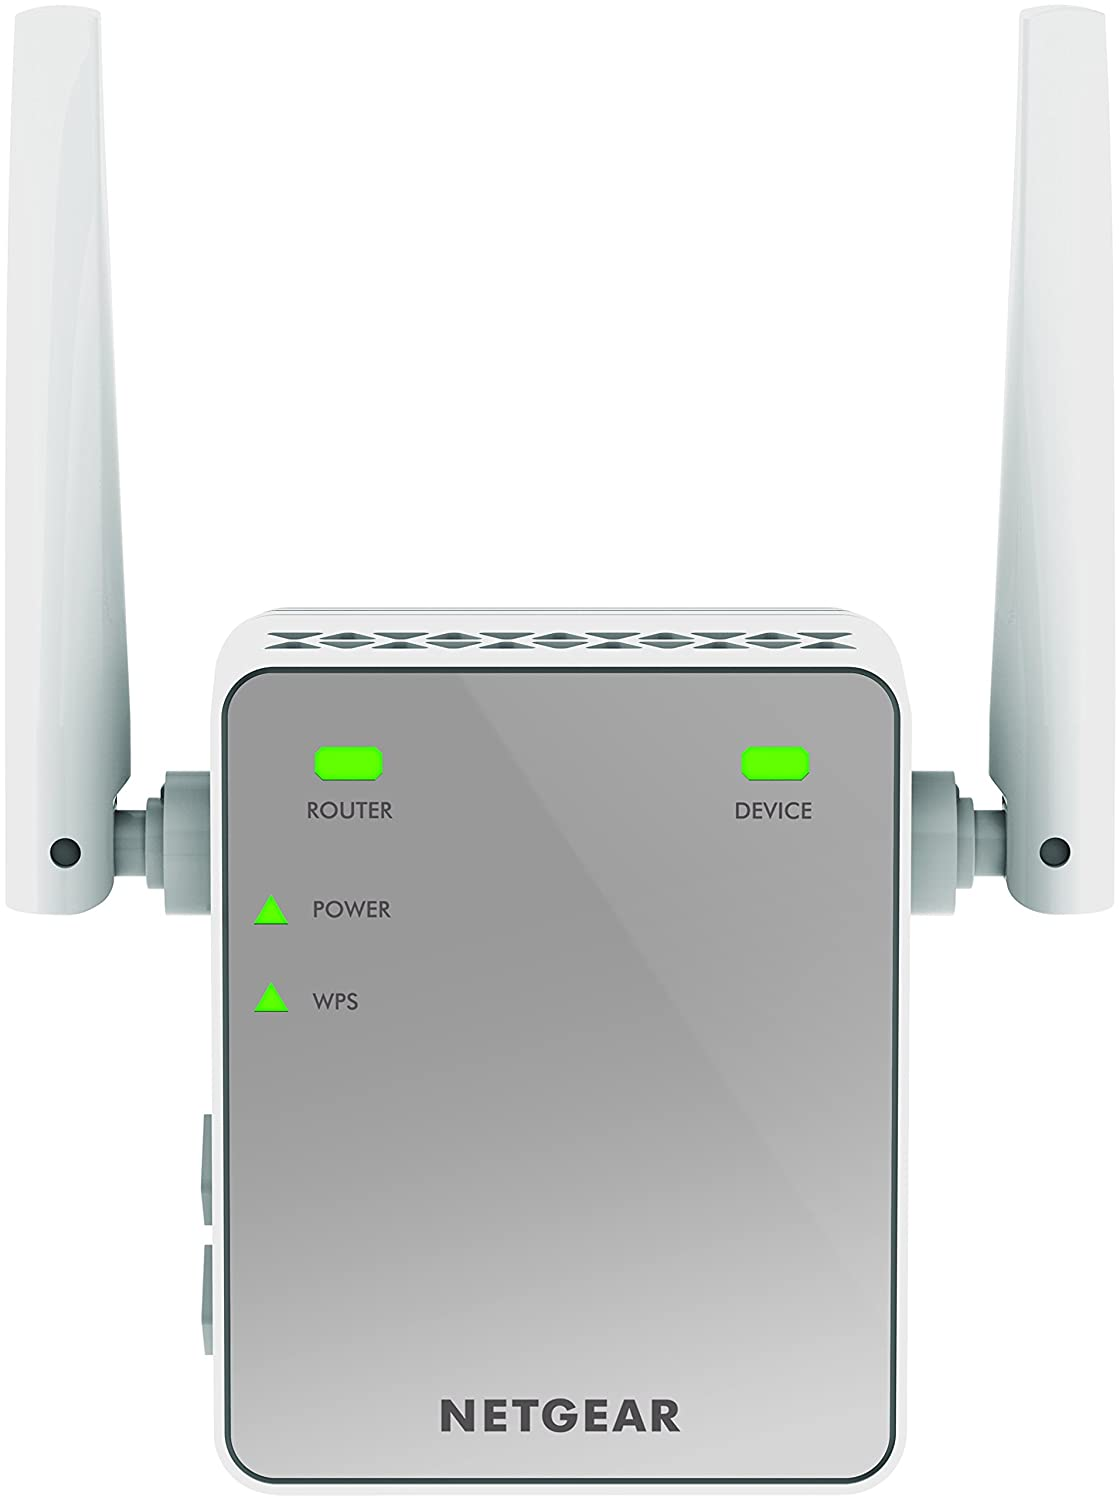 Netgear mini n300 mbps wi fi range extender with external antennas netgear mini n300 mbps wi fi range extender with external antennas wi fi booster ex2700 100uks amazon computers accessories greentooth Image collections